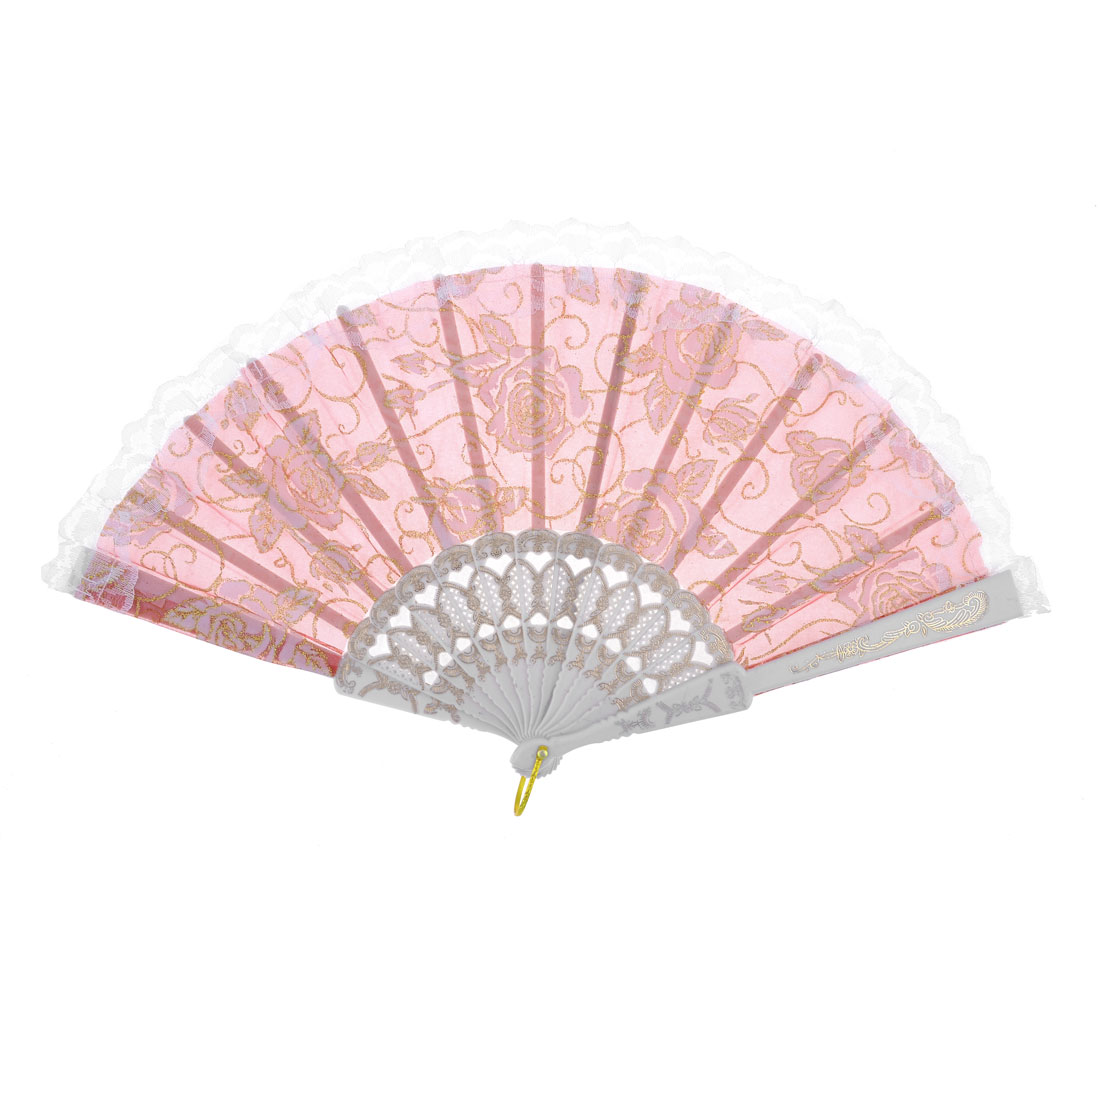 Flower Printed Lace Rim Plastic Ribs Folding Hand Fan White Pink